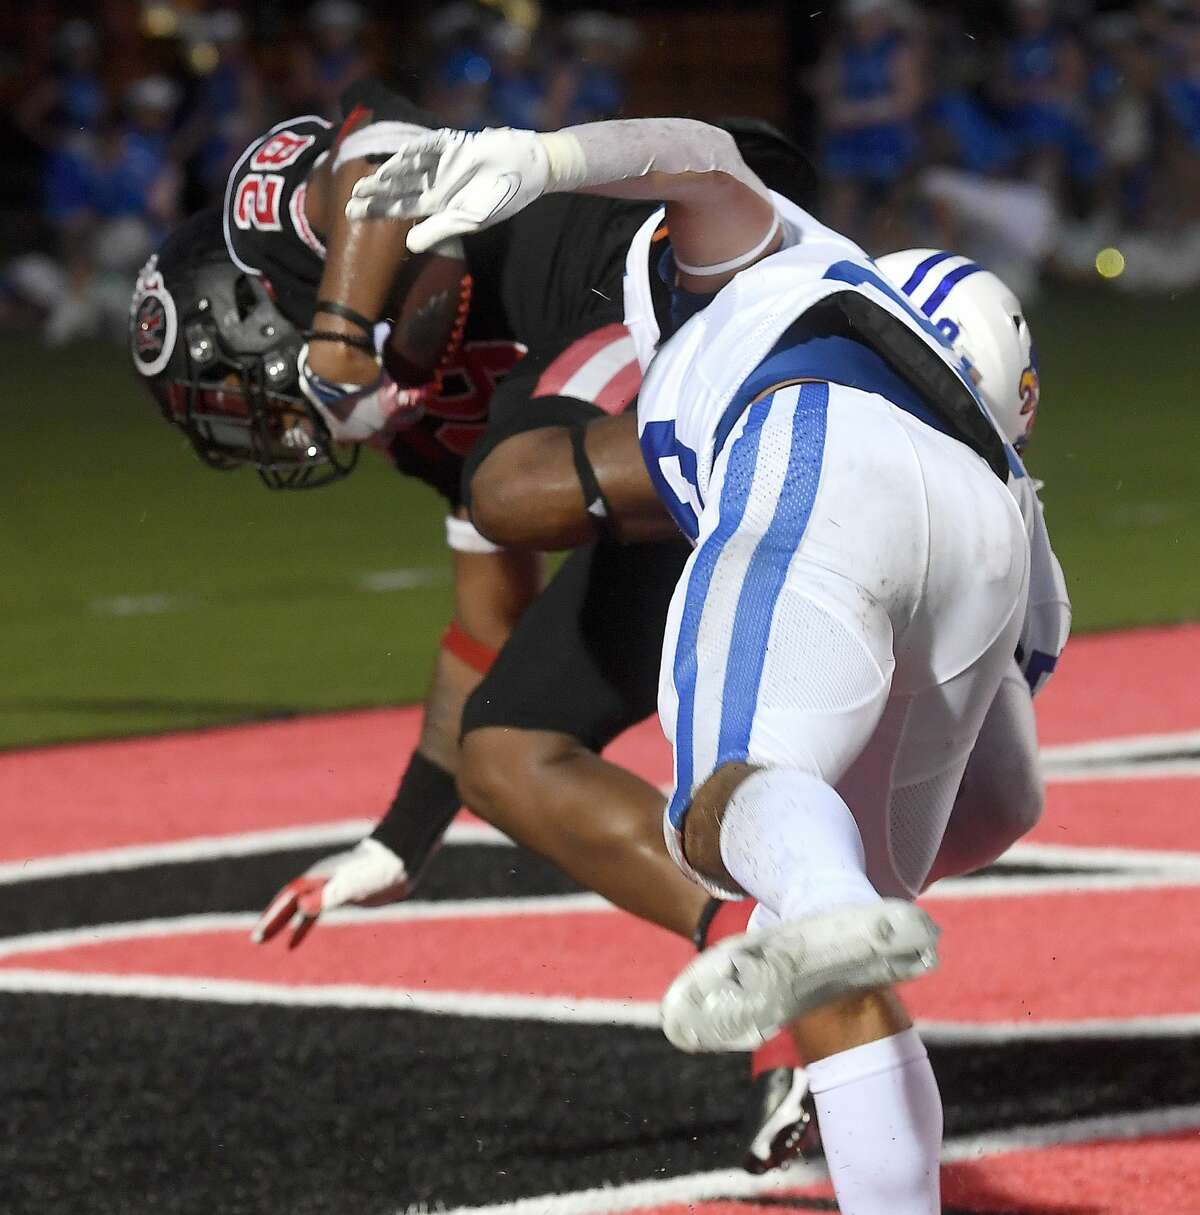 Port Arthur Memorial's Adrian Hayward dives into the endzone against Barbers Hill during their match-up Friday in Port Arthur. Photo made Friday, September 3, 2021 Kim Brent/The Enterprise